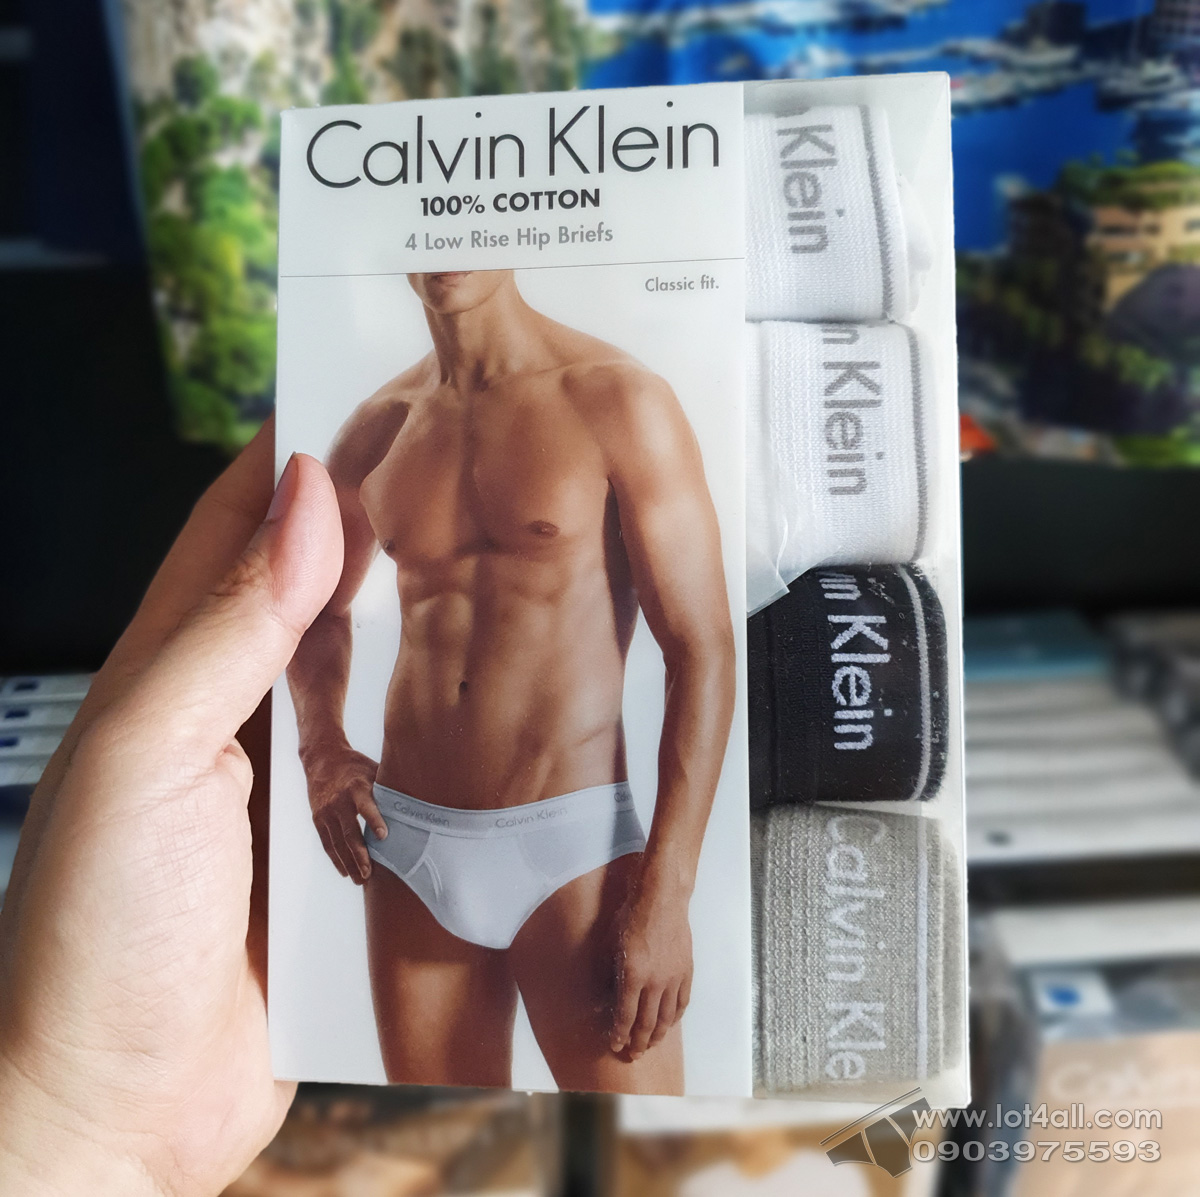 Quần lót Calvin Klein NP2173O Cotton Low Rise Brief 4-pack Black/Grey/White